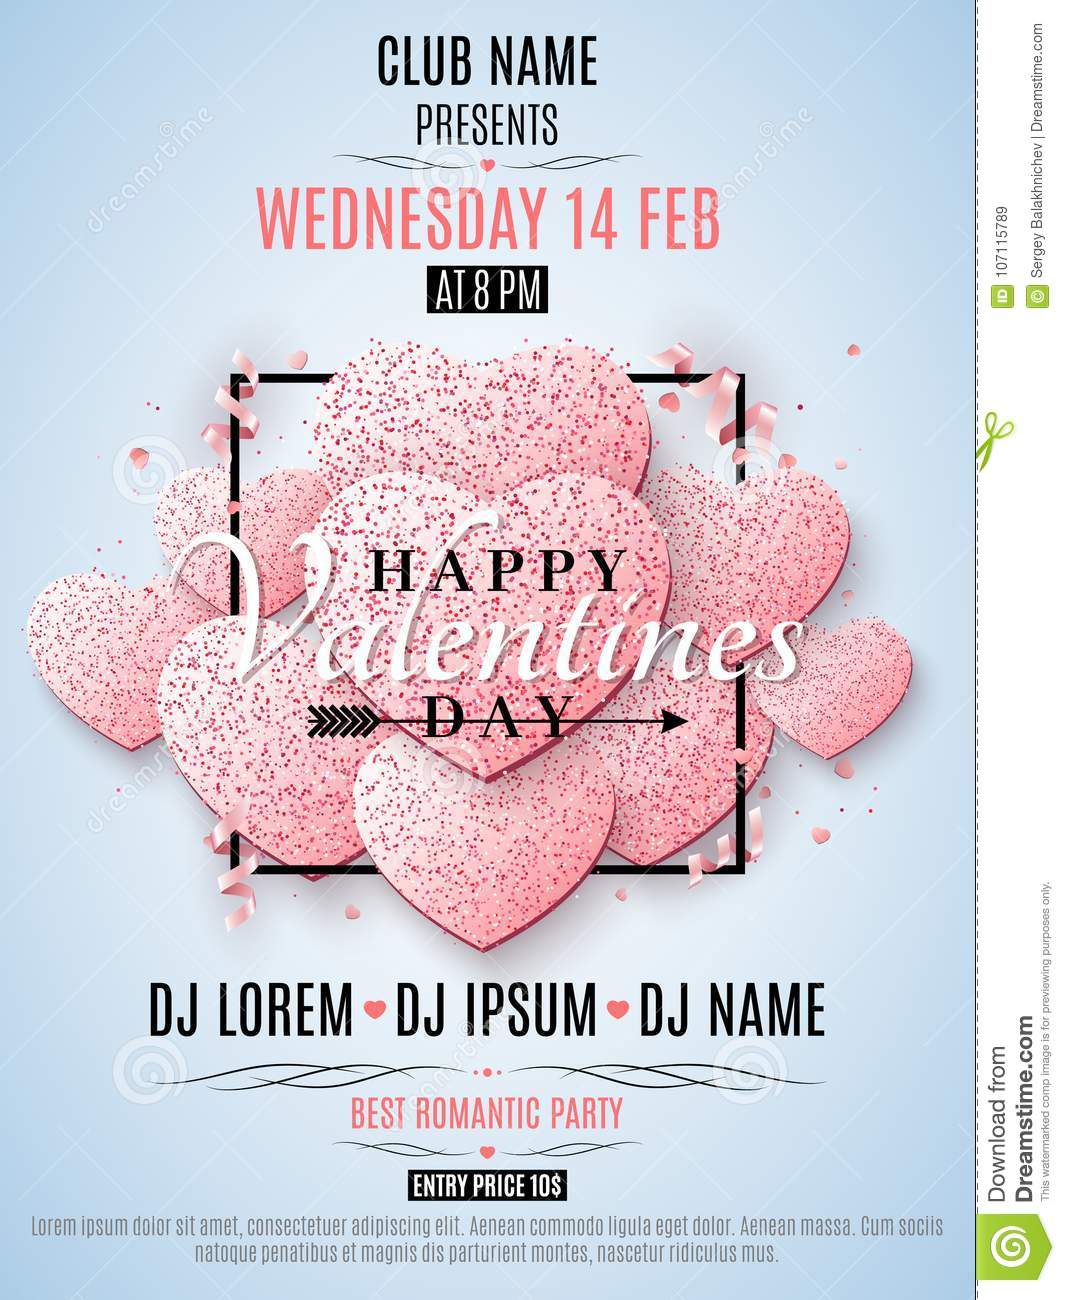 Valentines Day Party Flyer Pink Hearts Of Glitters In A Black Frame